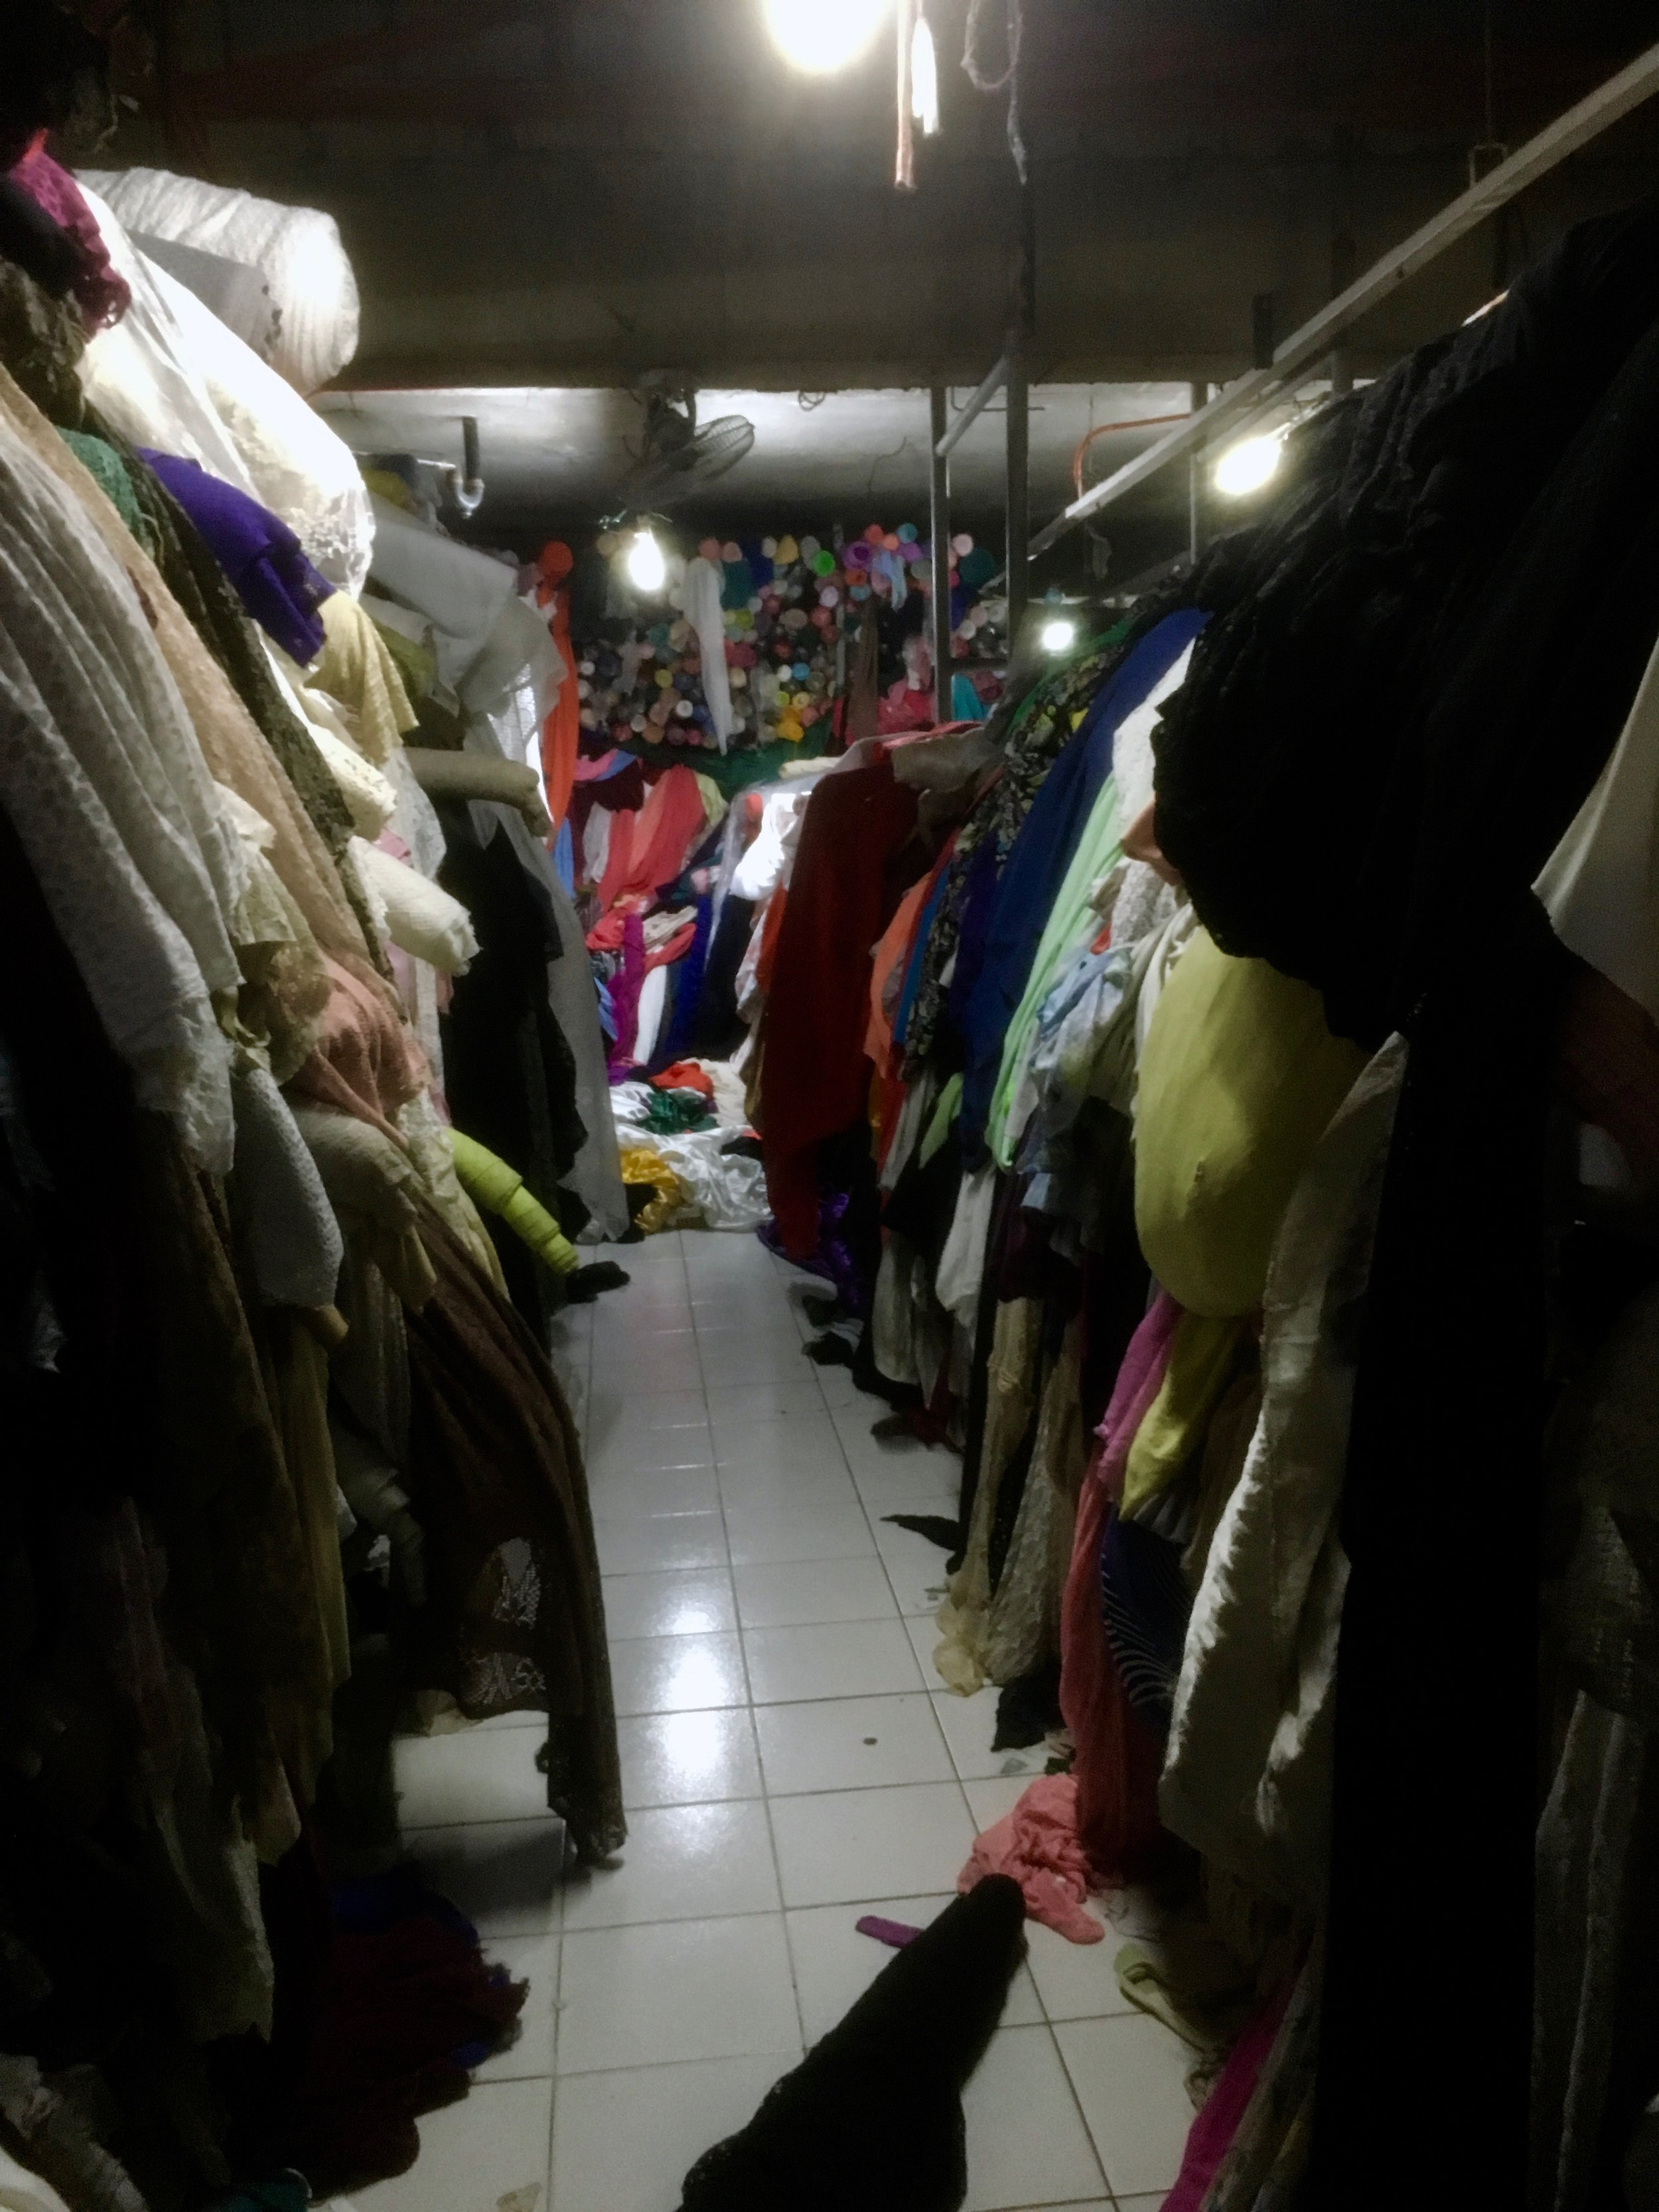 A typical scene in a fabric warehouse where excess/waste fabric is sold by the kilo.